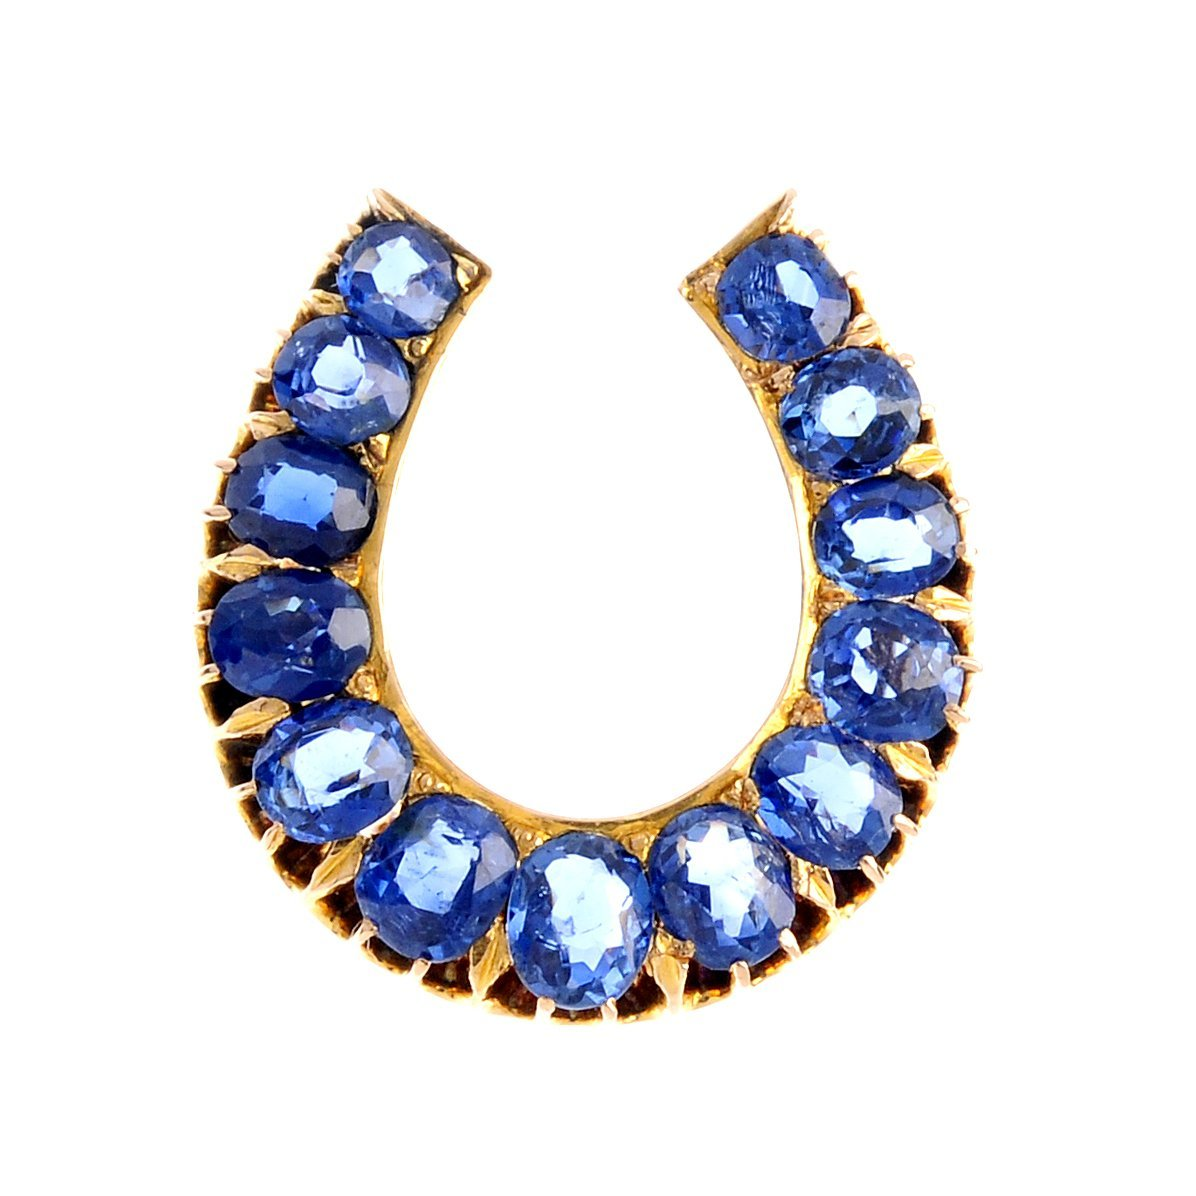 "<a href=""https://www.fellows.co.uk/2104-lot-405-An-early-20th-century-gold-sapphire-horseshoe-brooch?utm_source=Ageless%20Heirlooms&utm_medium=blog&utm_campaign=Ageless%20Heirlooms%20Vintage&utm_content=Blog%20and%20social"">LOT 405</a>"